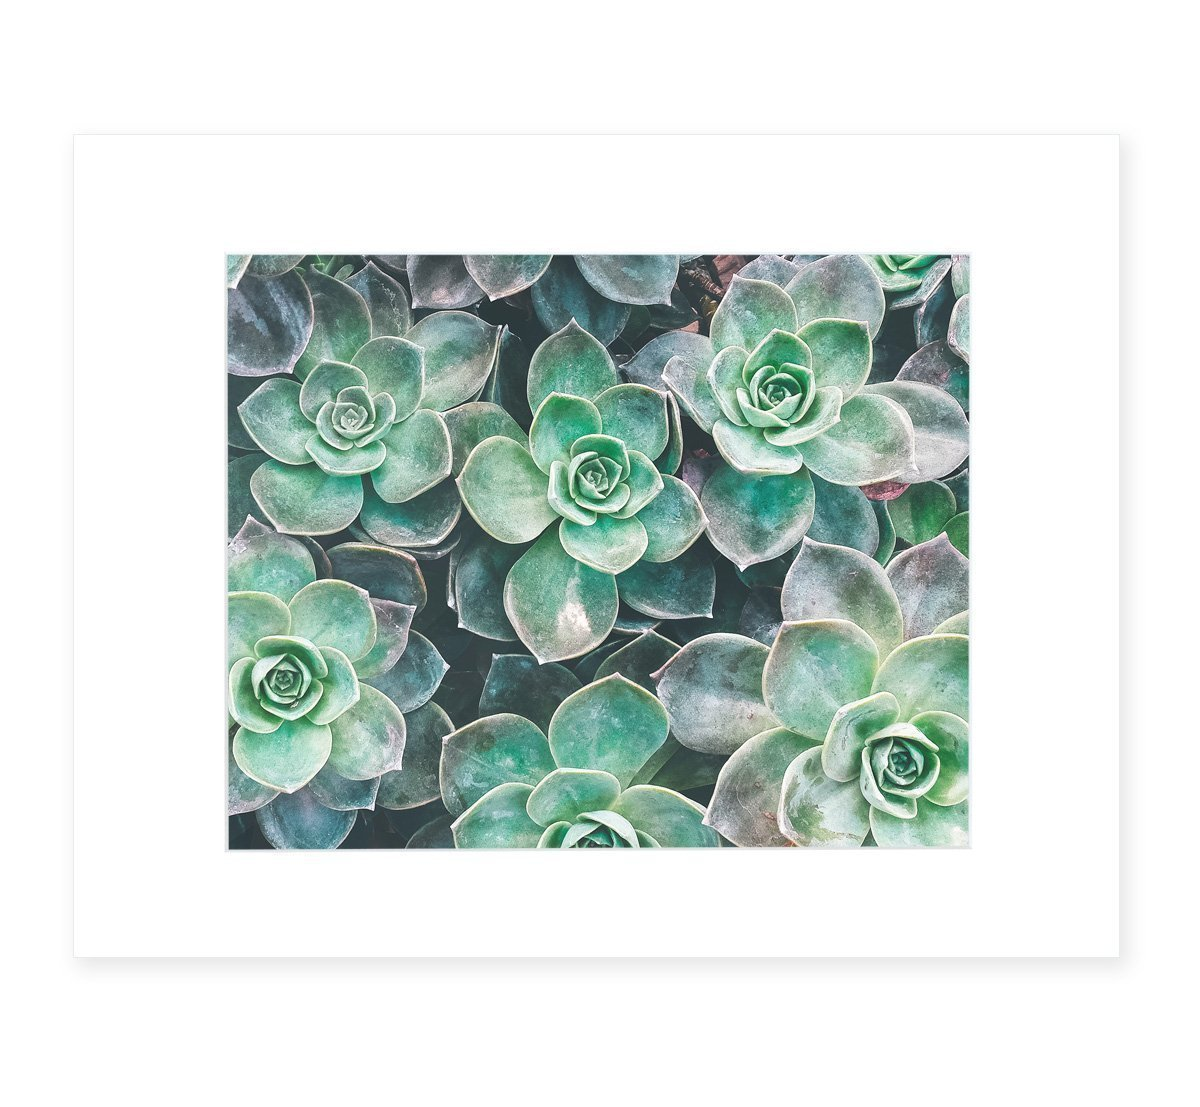 Fresh Green Succulent Floral Wall Art, Botanical Wall Decor, 8x10 Matted Photographic Print (fits 11x14 frame), 'Bed of Succulents'